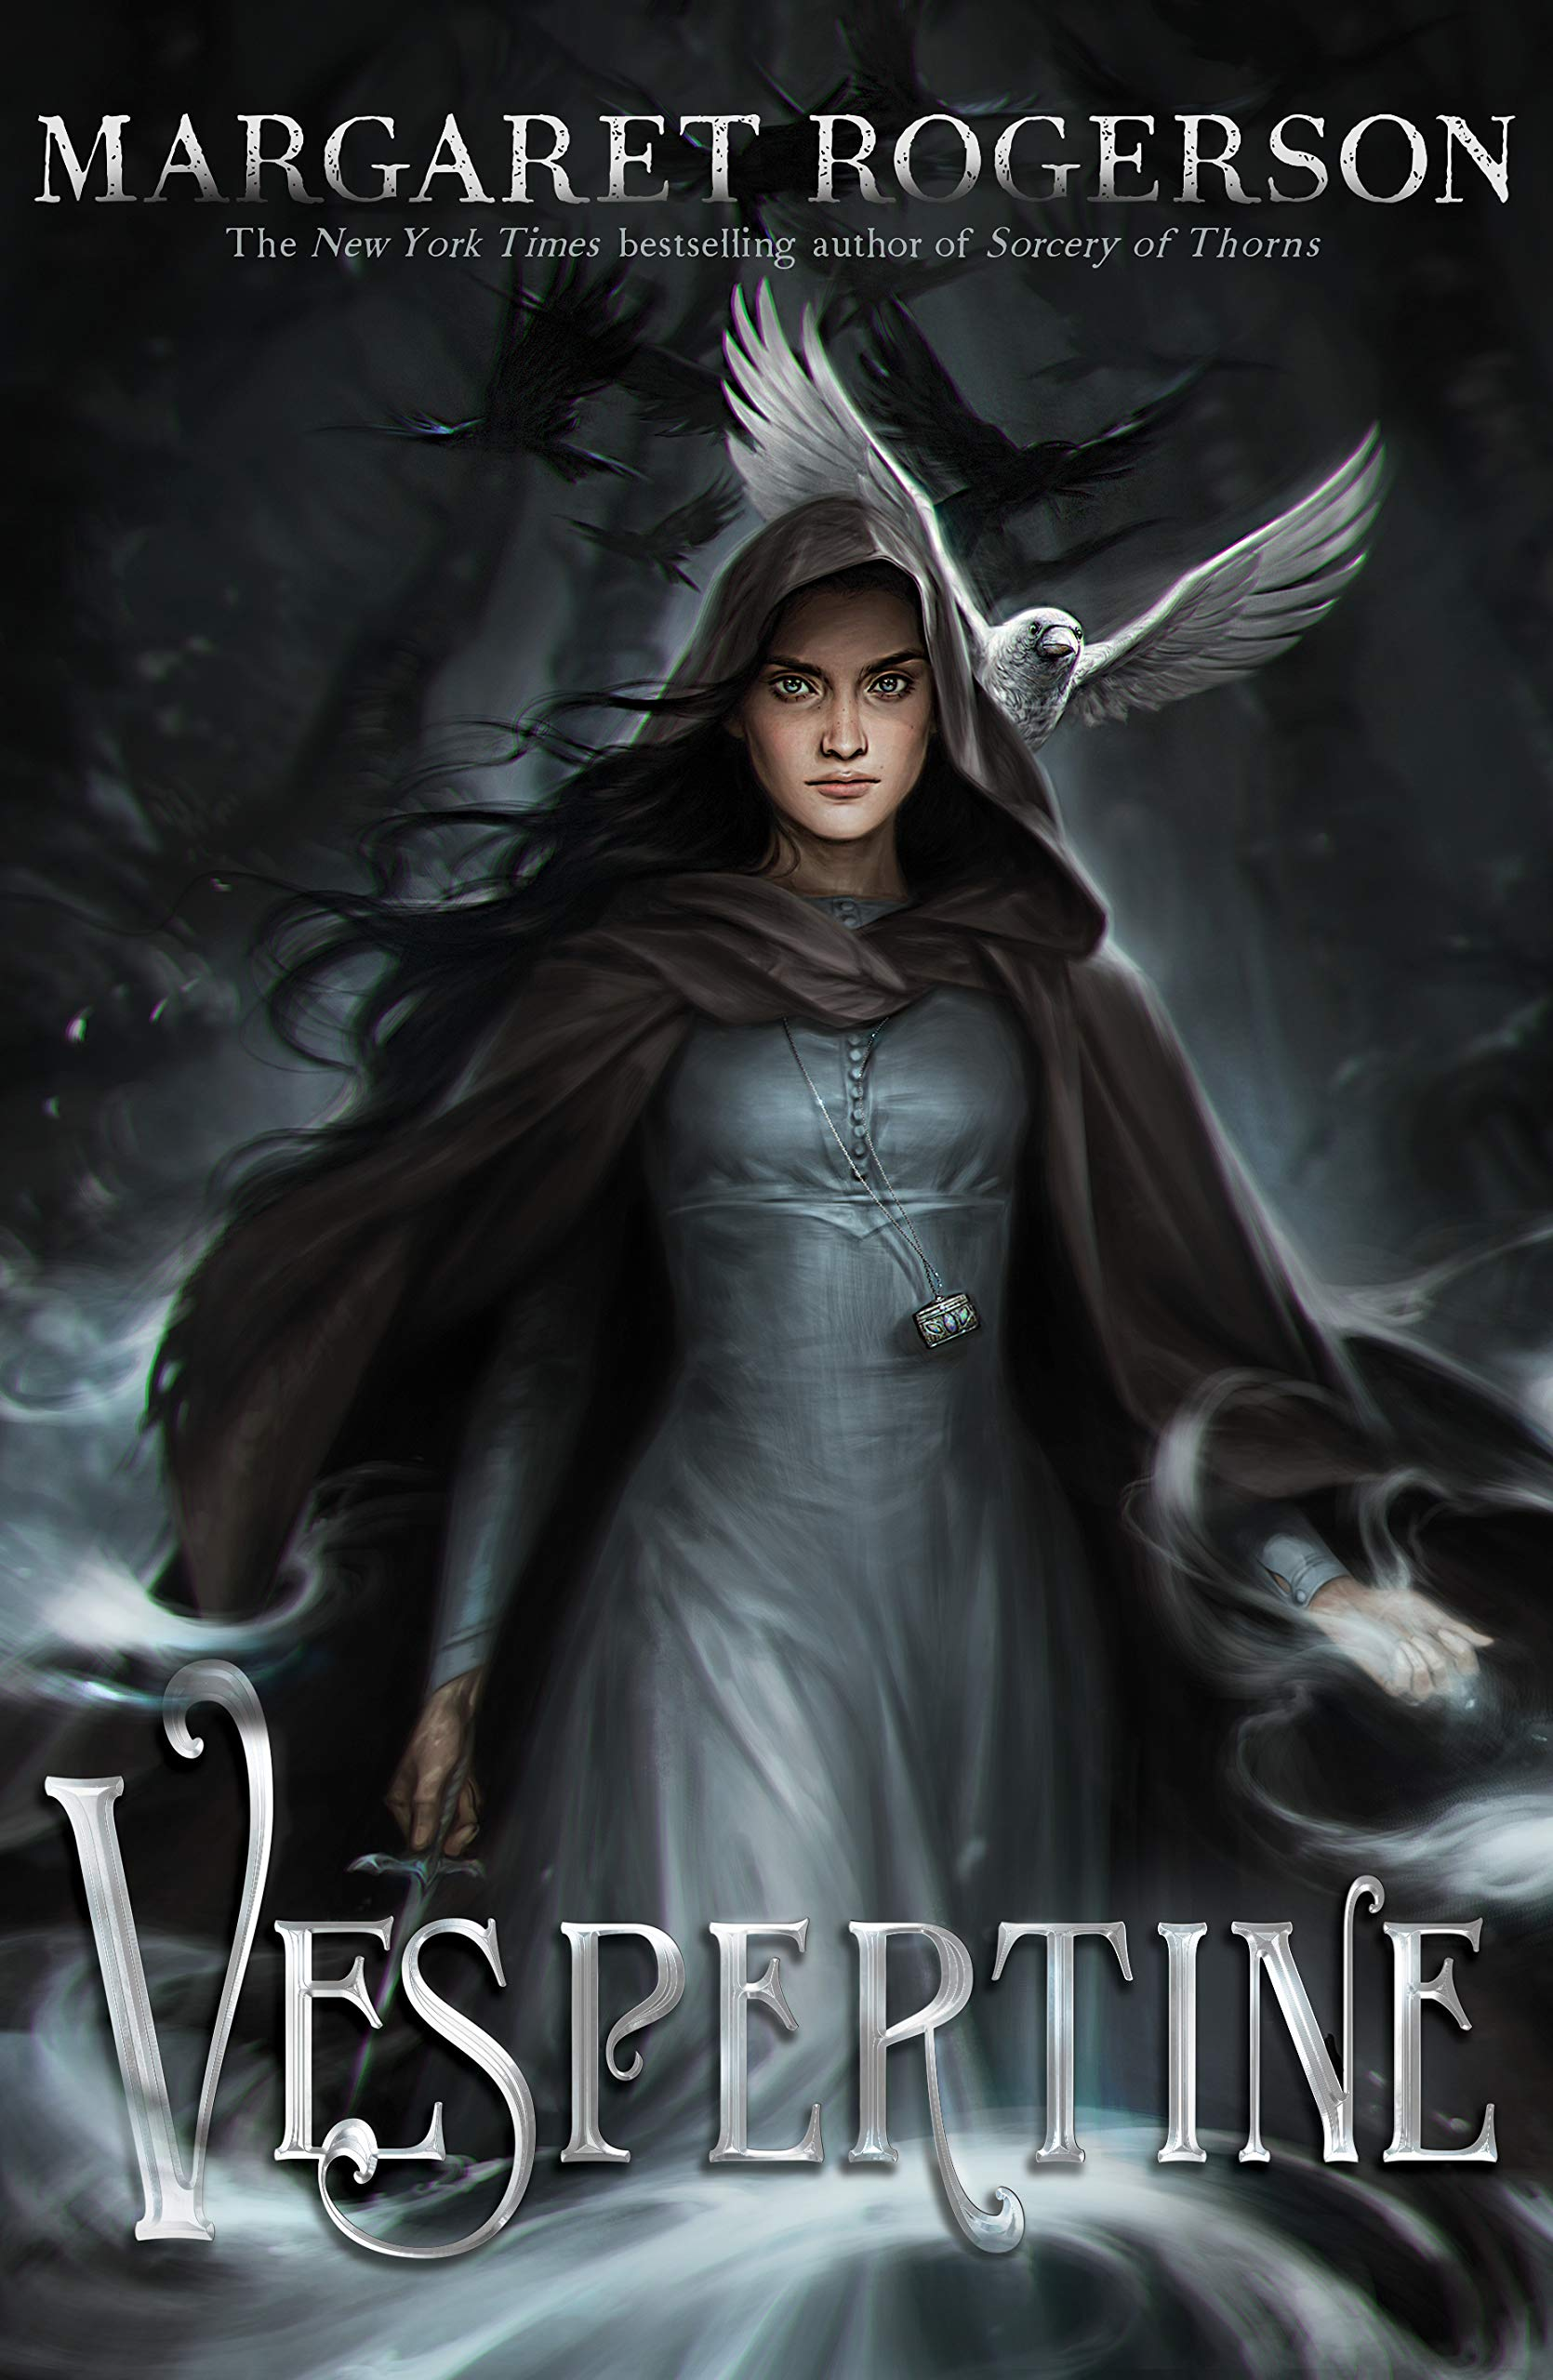 Cover for Vespertine by Margaret Rogerson. It features a white woman facing the reader. The wind blows through her cloak and dark hair while crows fly behind her. The whole thing is dark in tones of black and grey with a single white crow behind the character's left shoulder. The title is on the bottom of the cover in silver letters.